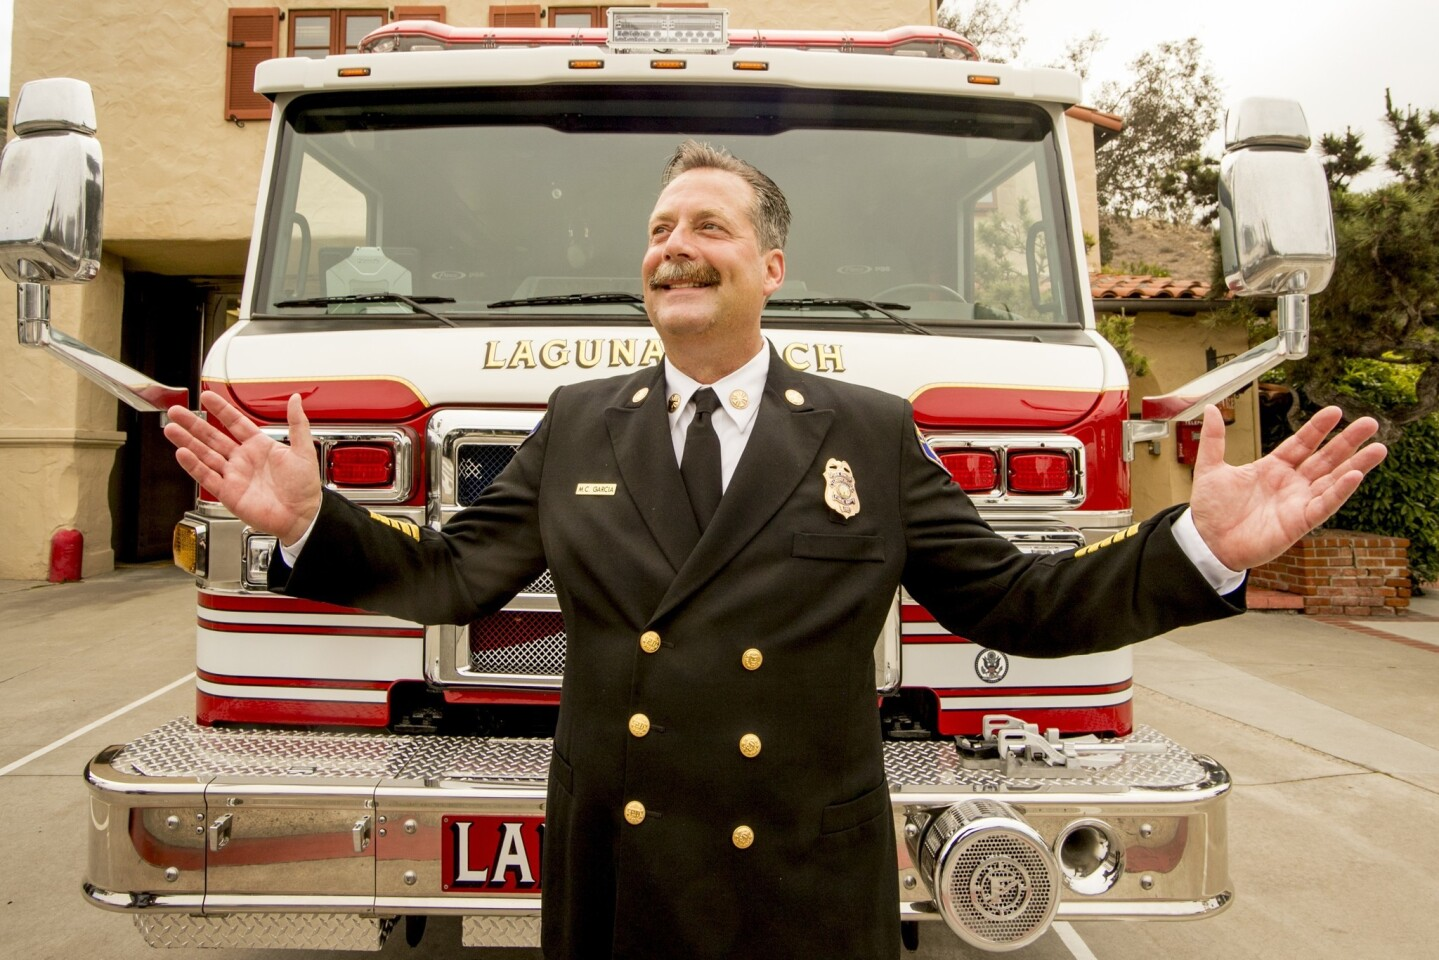 New Laguna Beach Fire Chief Michael Garcia, who took the helm of the department in late April, stands in front of a fire engine after his installation ceremony Monday.